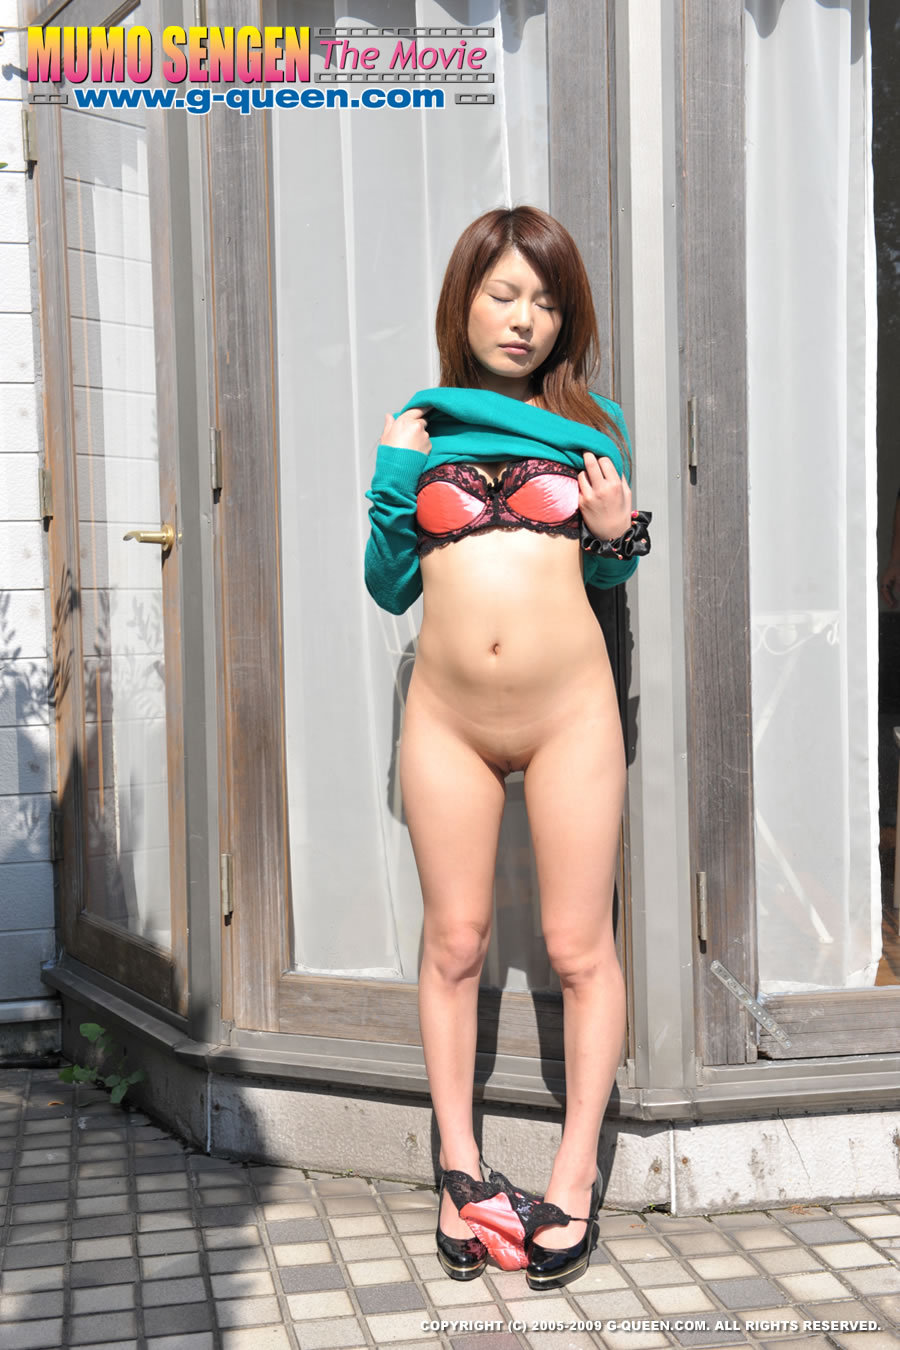 Voyeur japan big tits and muff shots 5